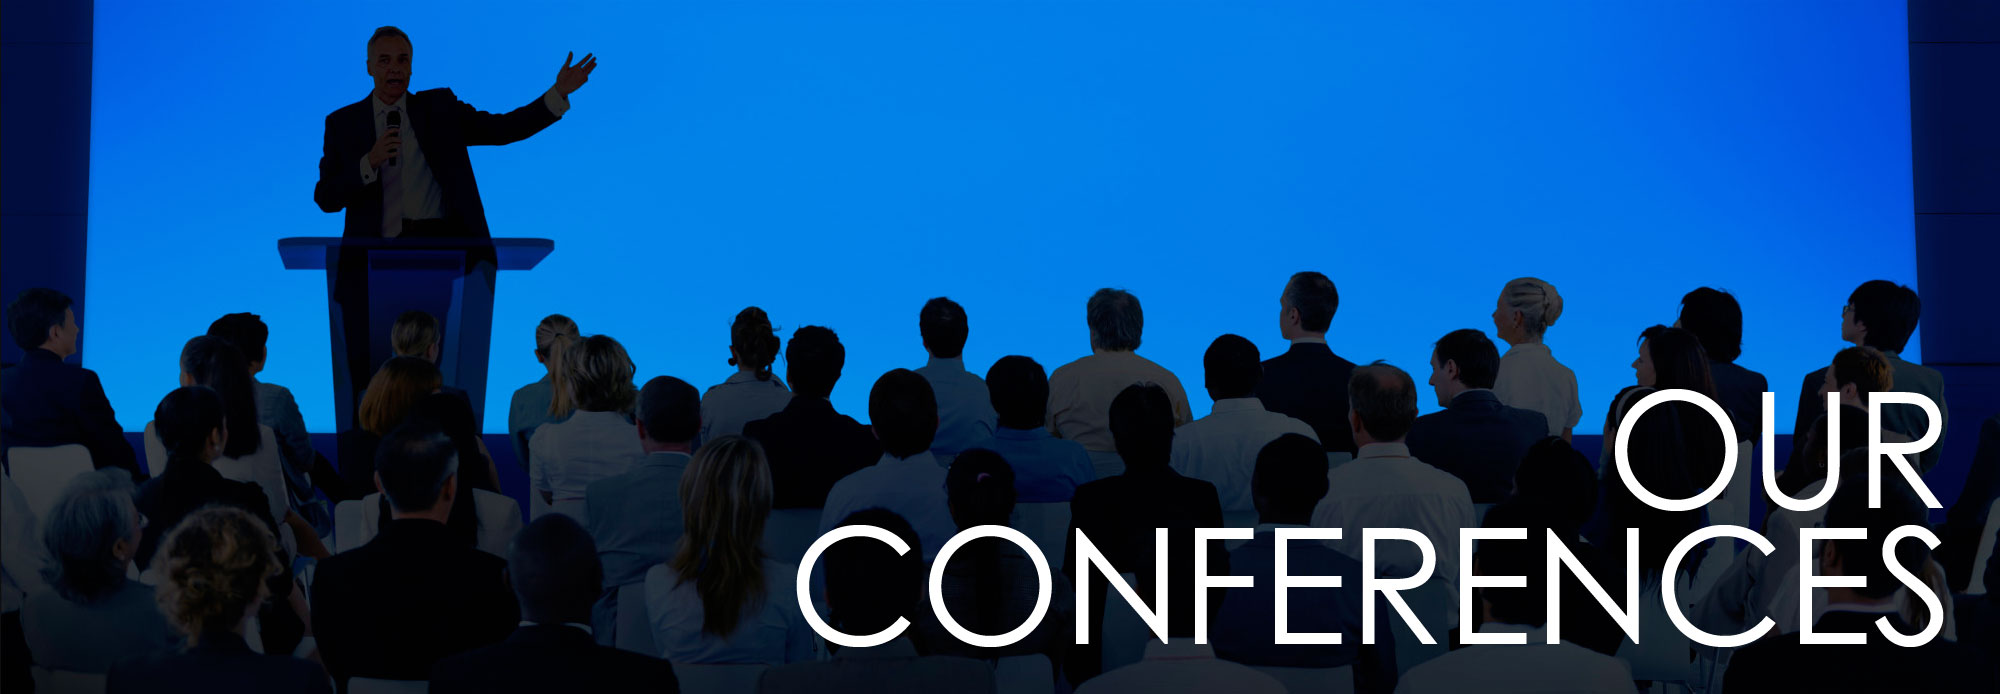 banner_home_conferences